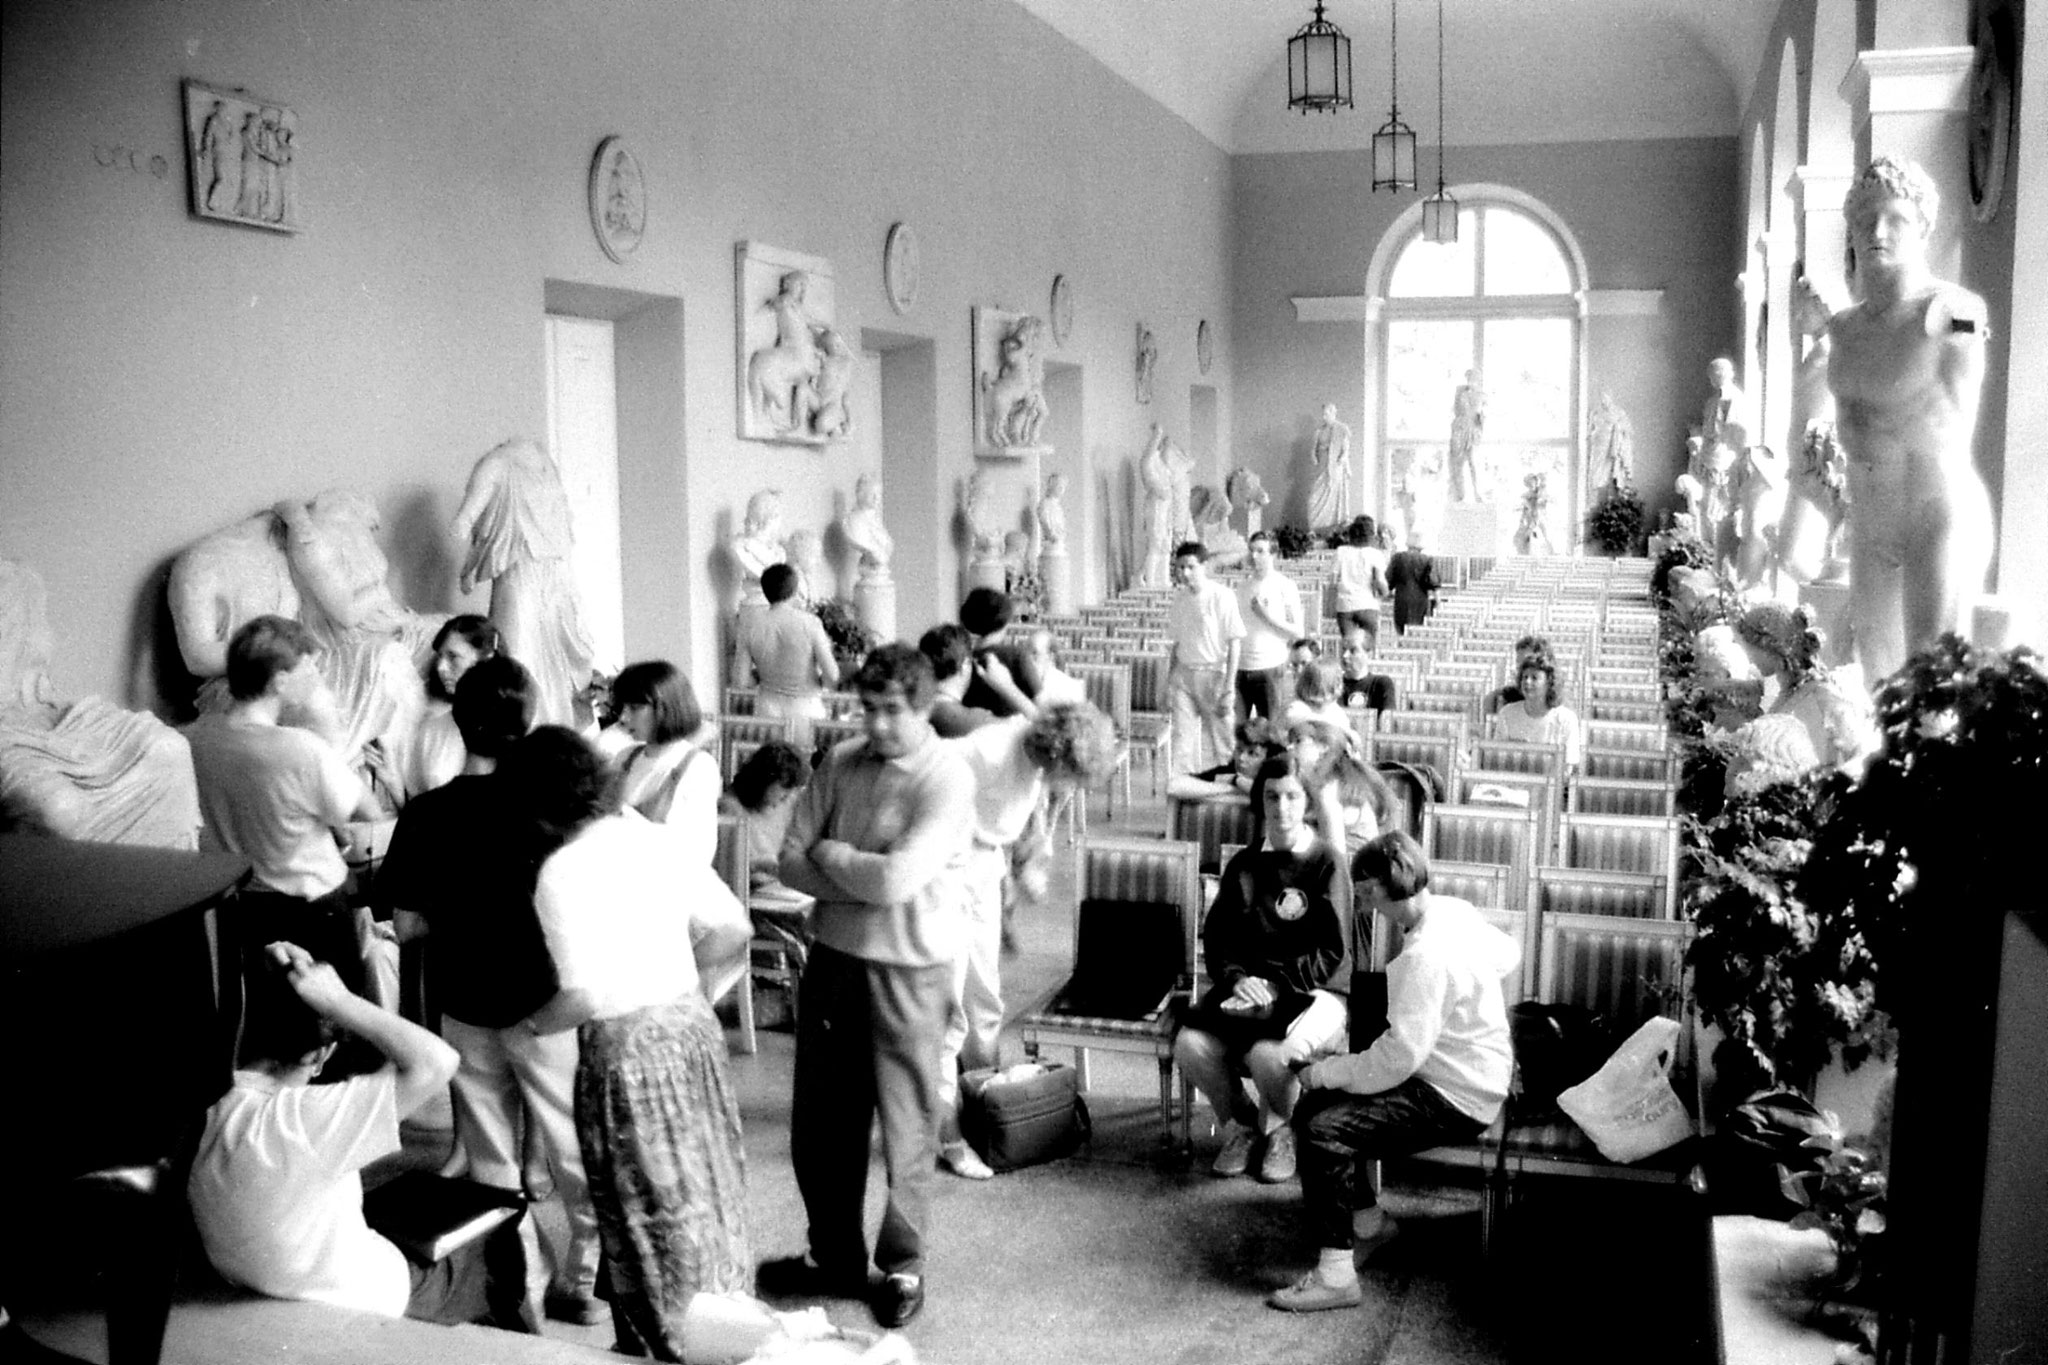 21/8/1988: 7: London Chorale rehearsal in Orangery at Lazienkowski Palace